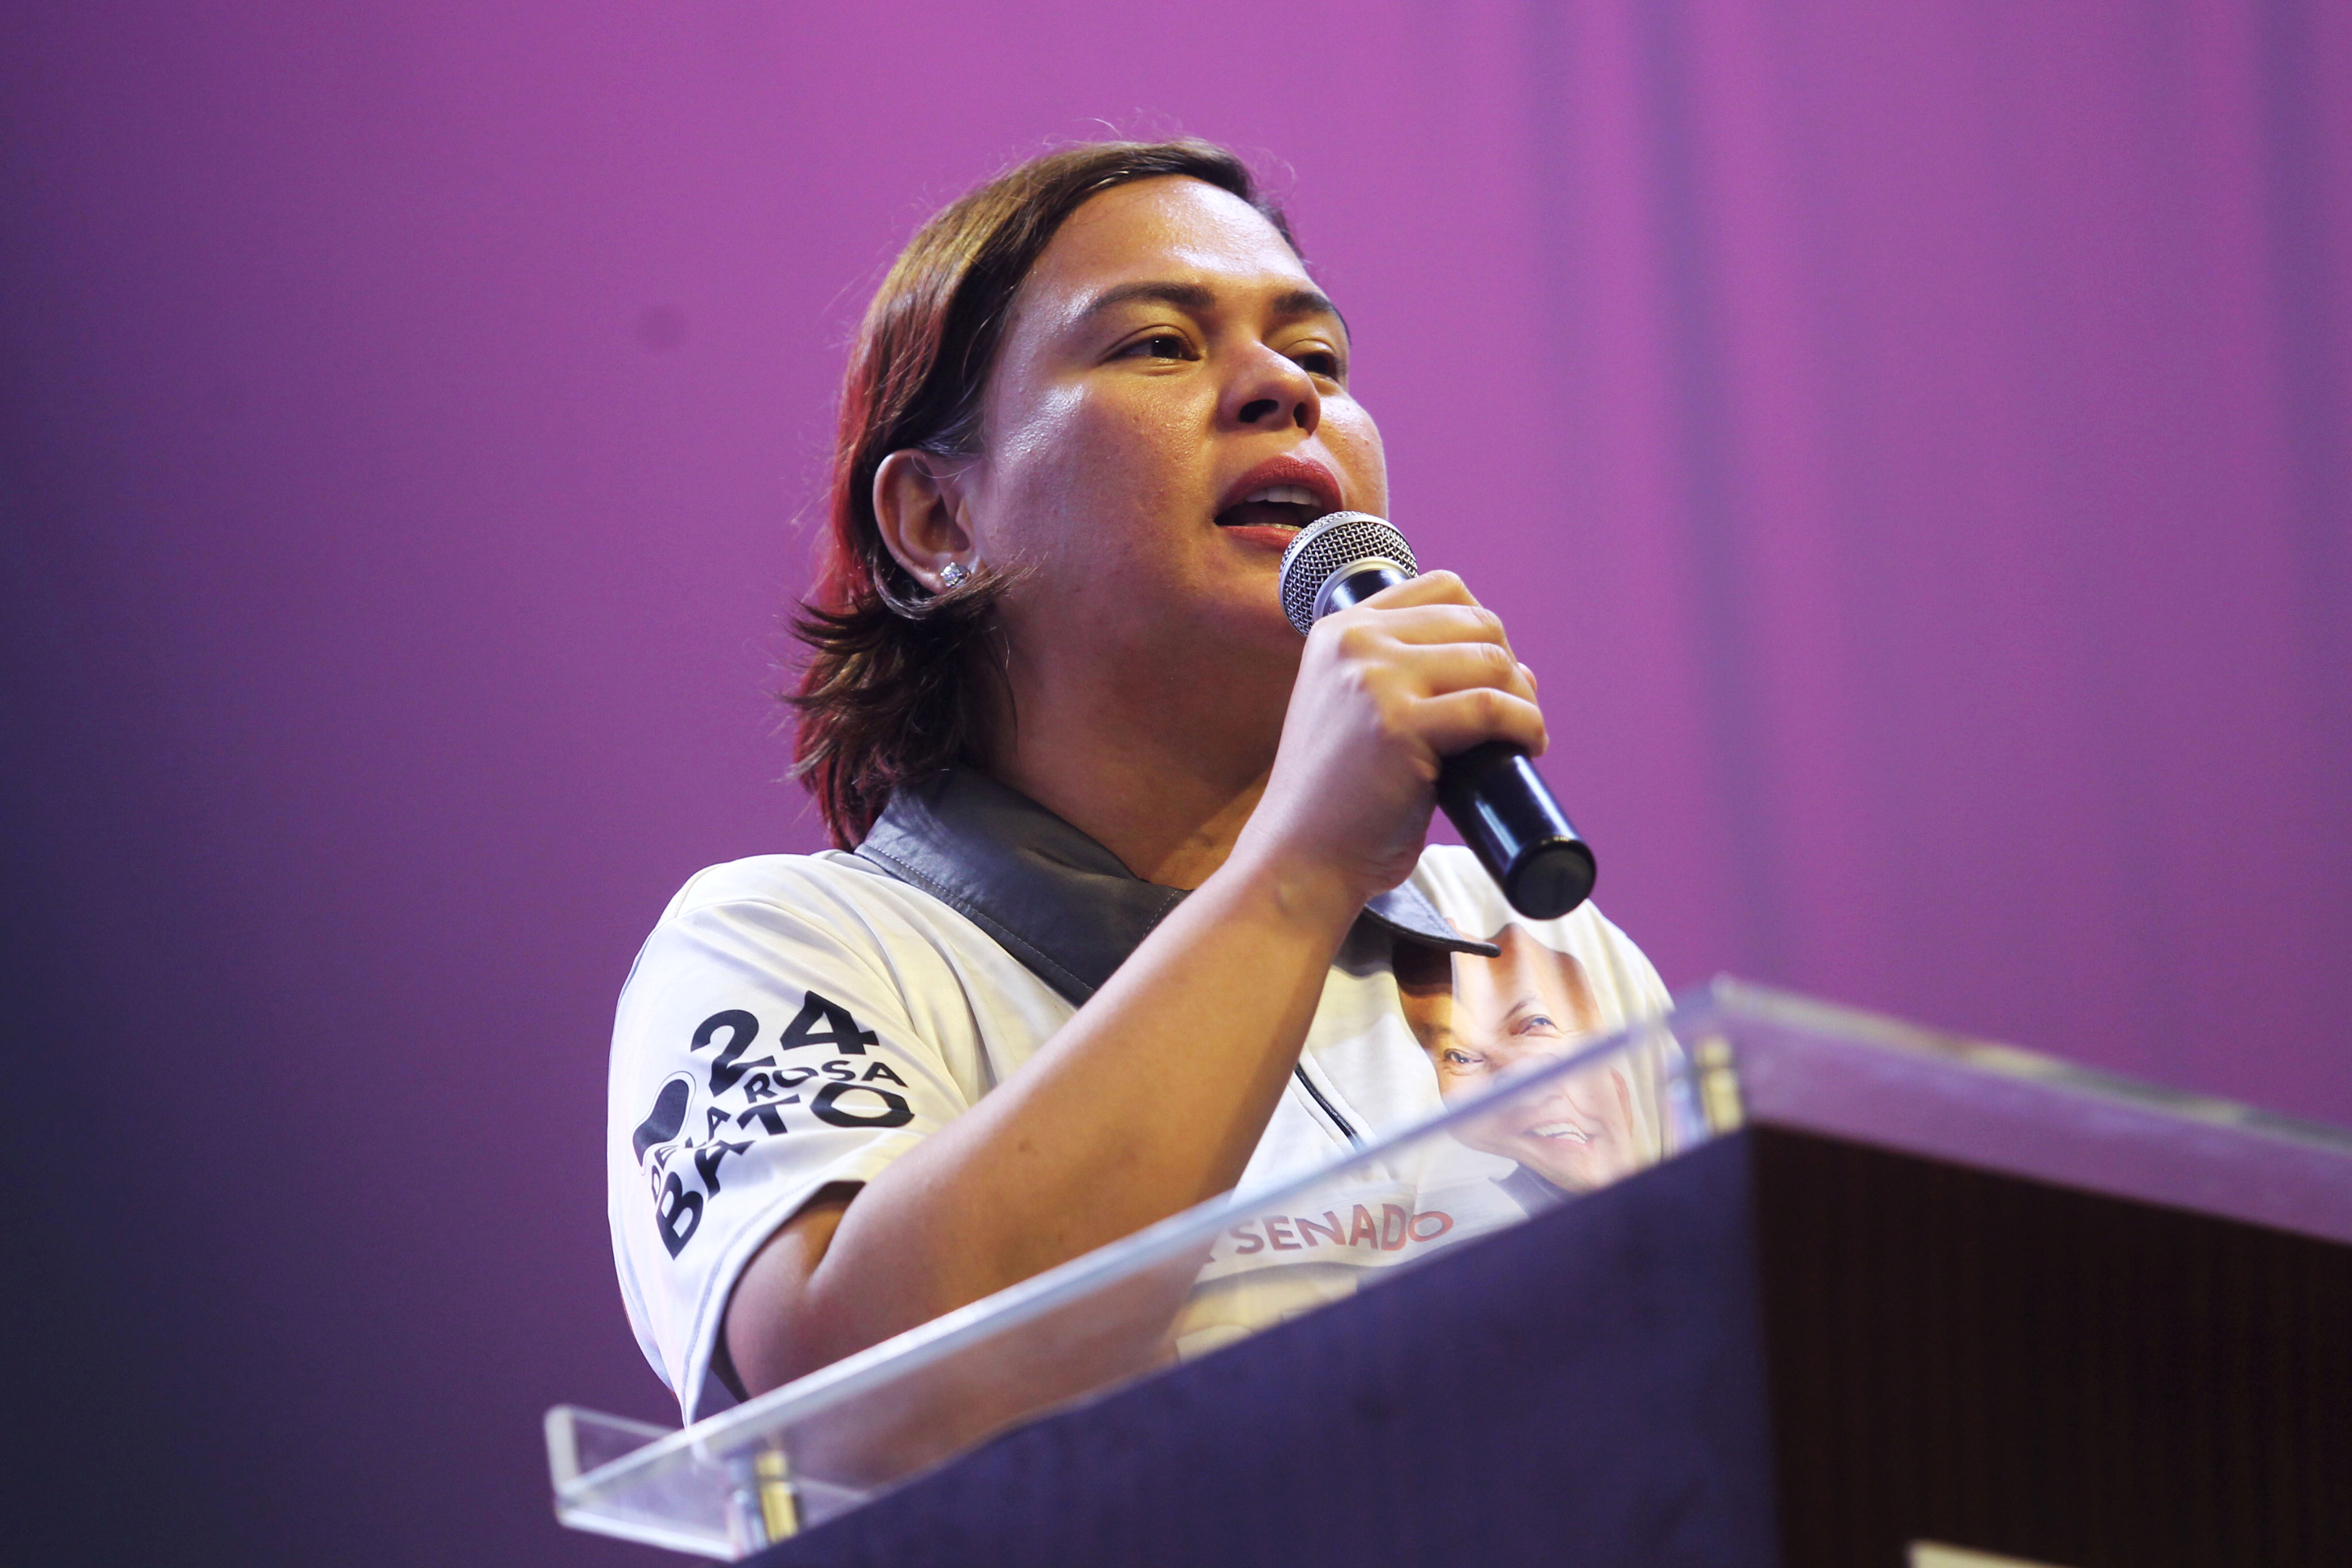 Sara Duterte, Davao City Mayor and daughter of Philippine President Rodrigo Duterte, delivers a speech during a senatorial campaign caravan for Hugpong Ng Pagbabago (HNP) in Davao City, southern Philippines on May 9, 2019. HNP is a regional political party chaired by Sara Duterte. Picture taken May 9, 2019 . REUTERS/Lean Daval Jr/File Photo